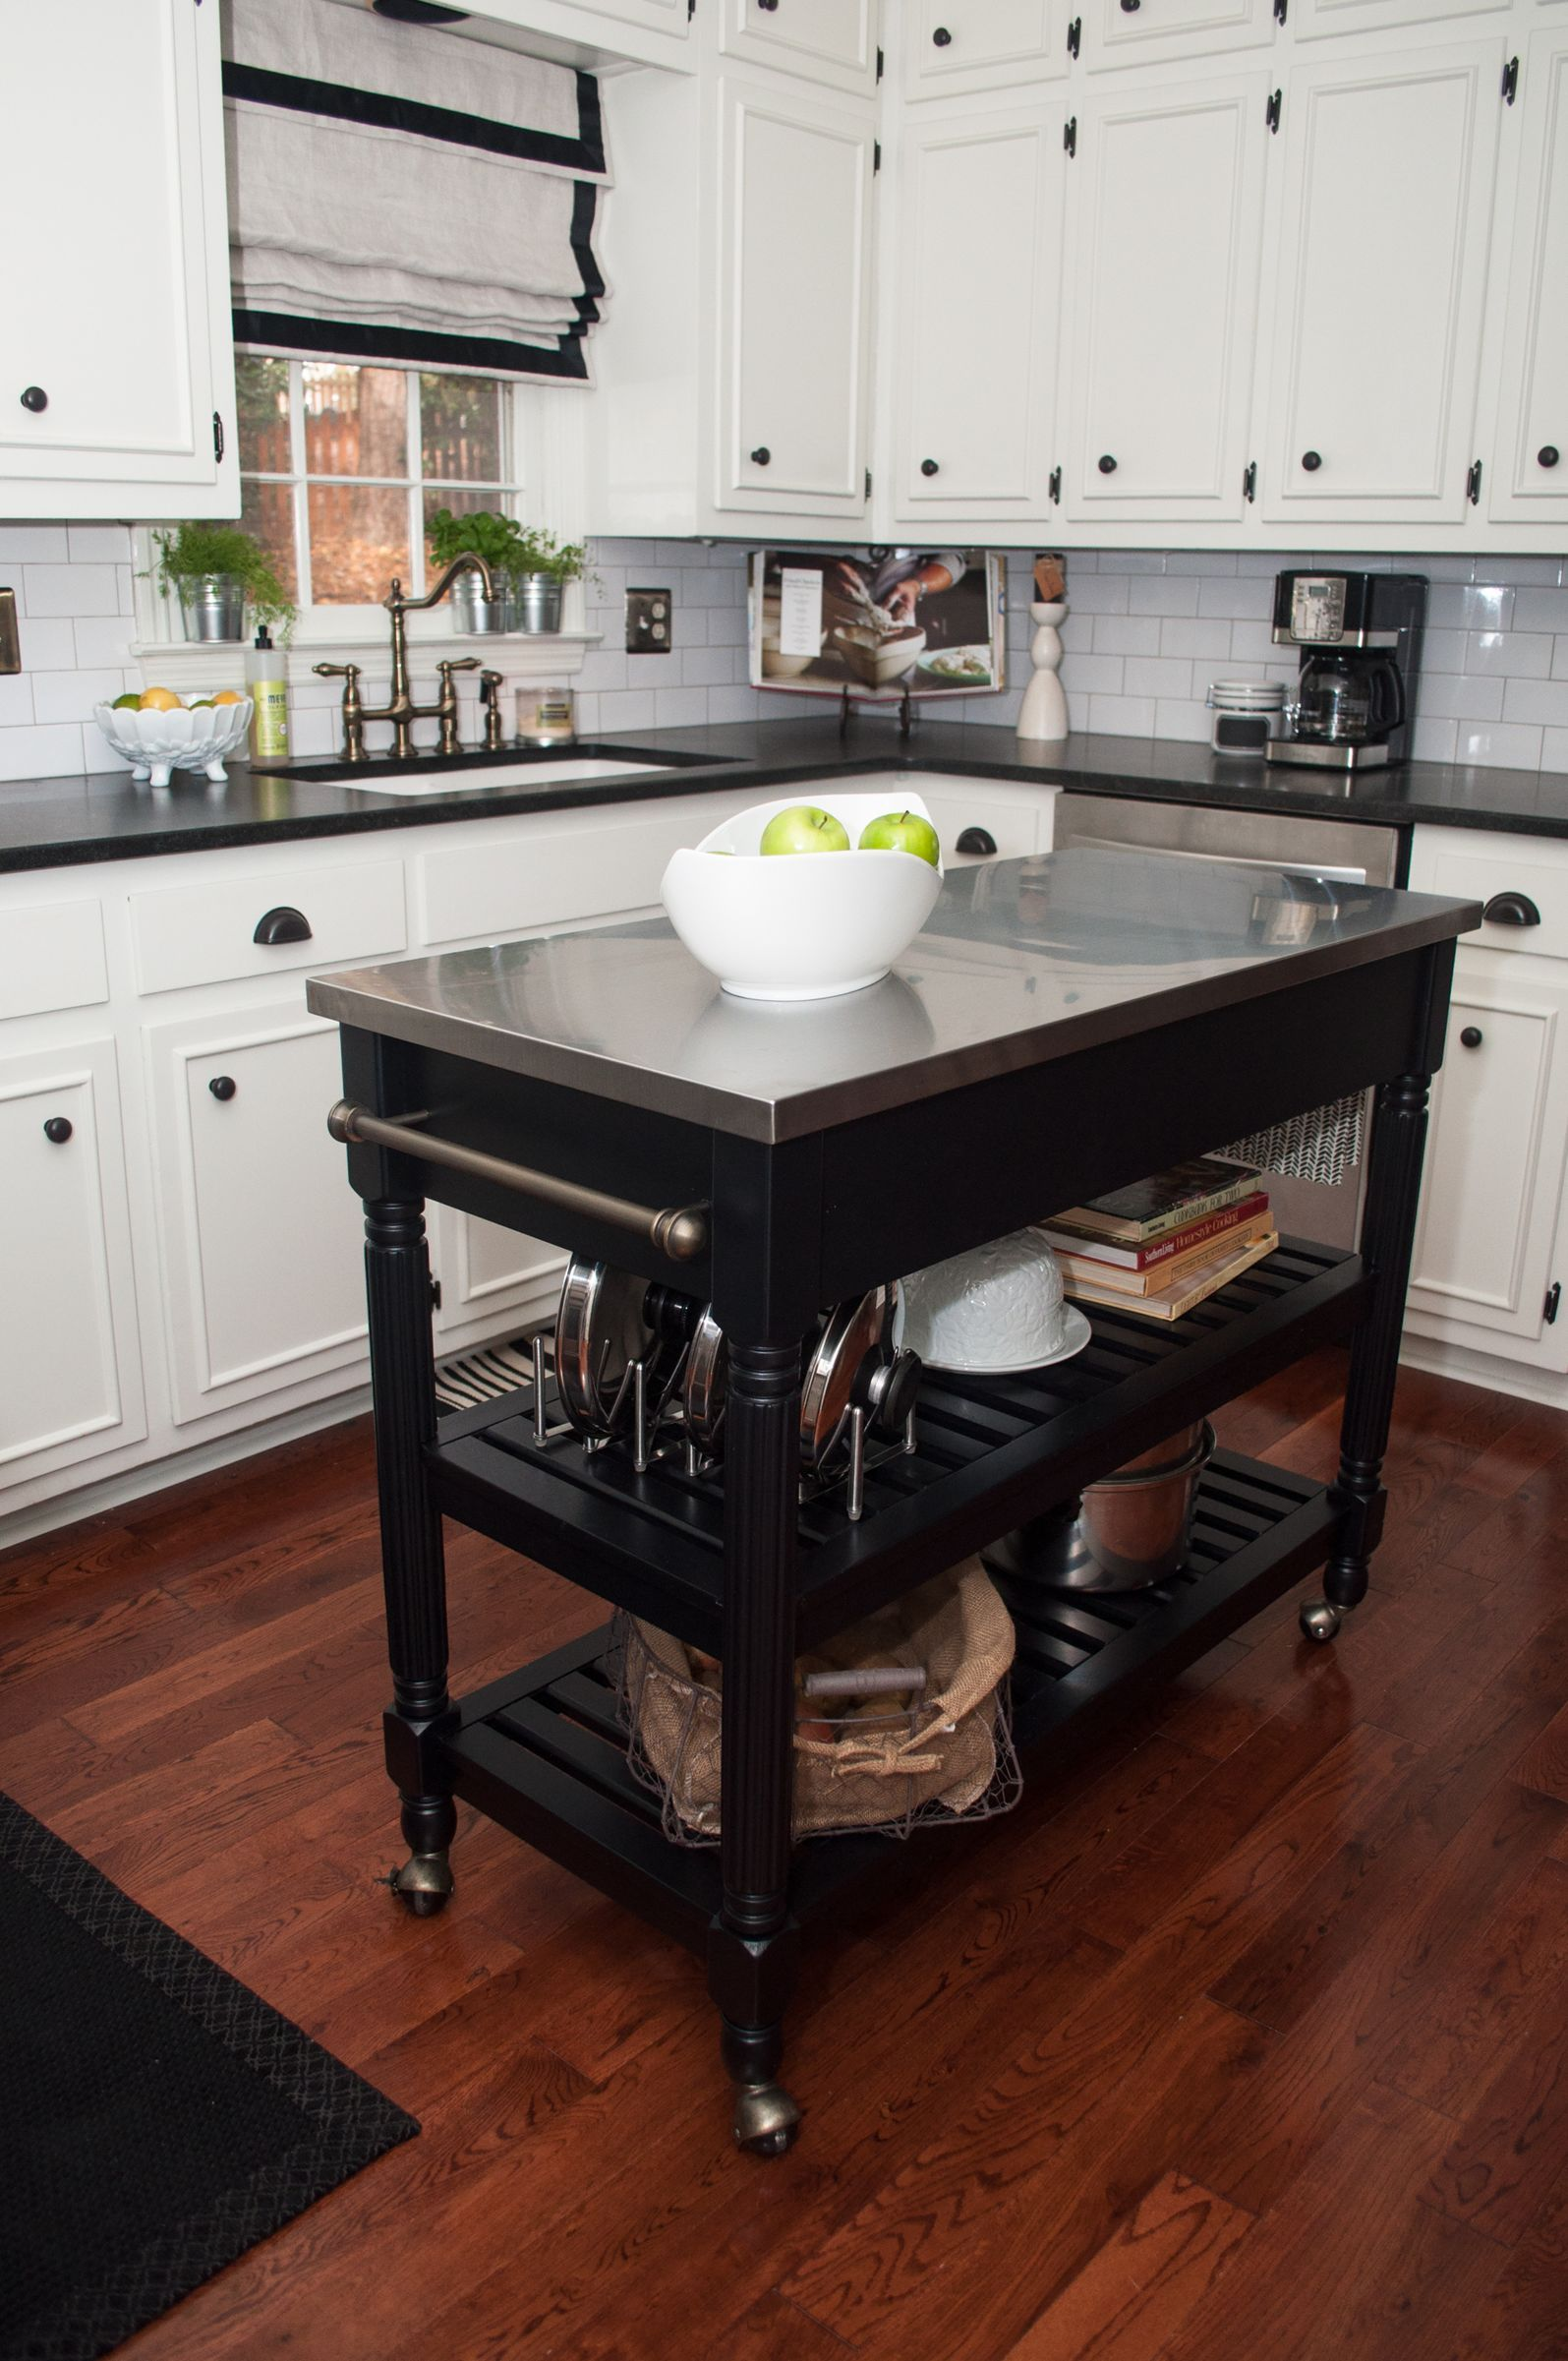 Charmant Smaller White Kitchen With Dark Portable Kitchen Island On Wheels. Good Use  Of High Cabinets